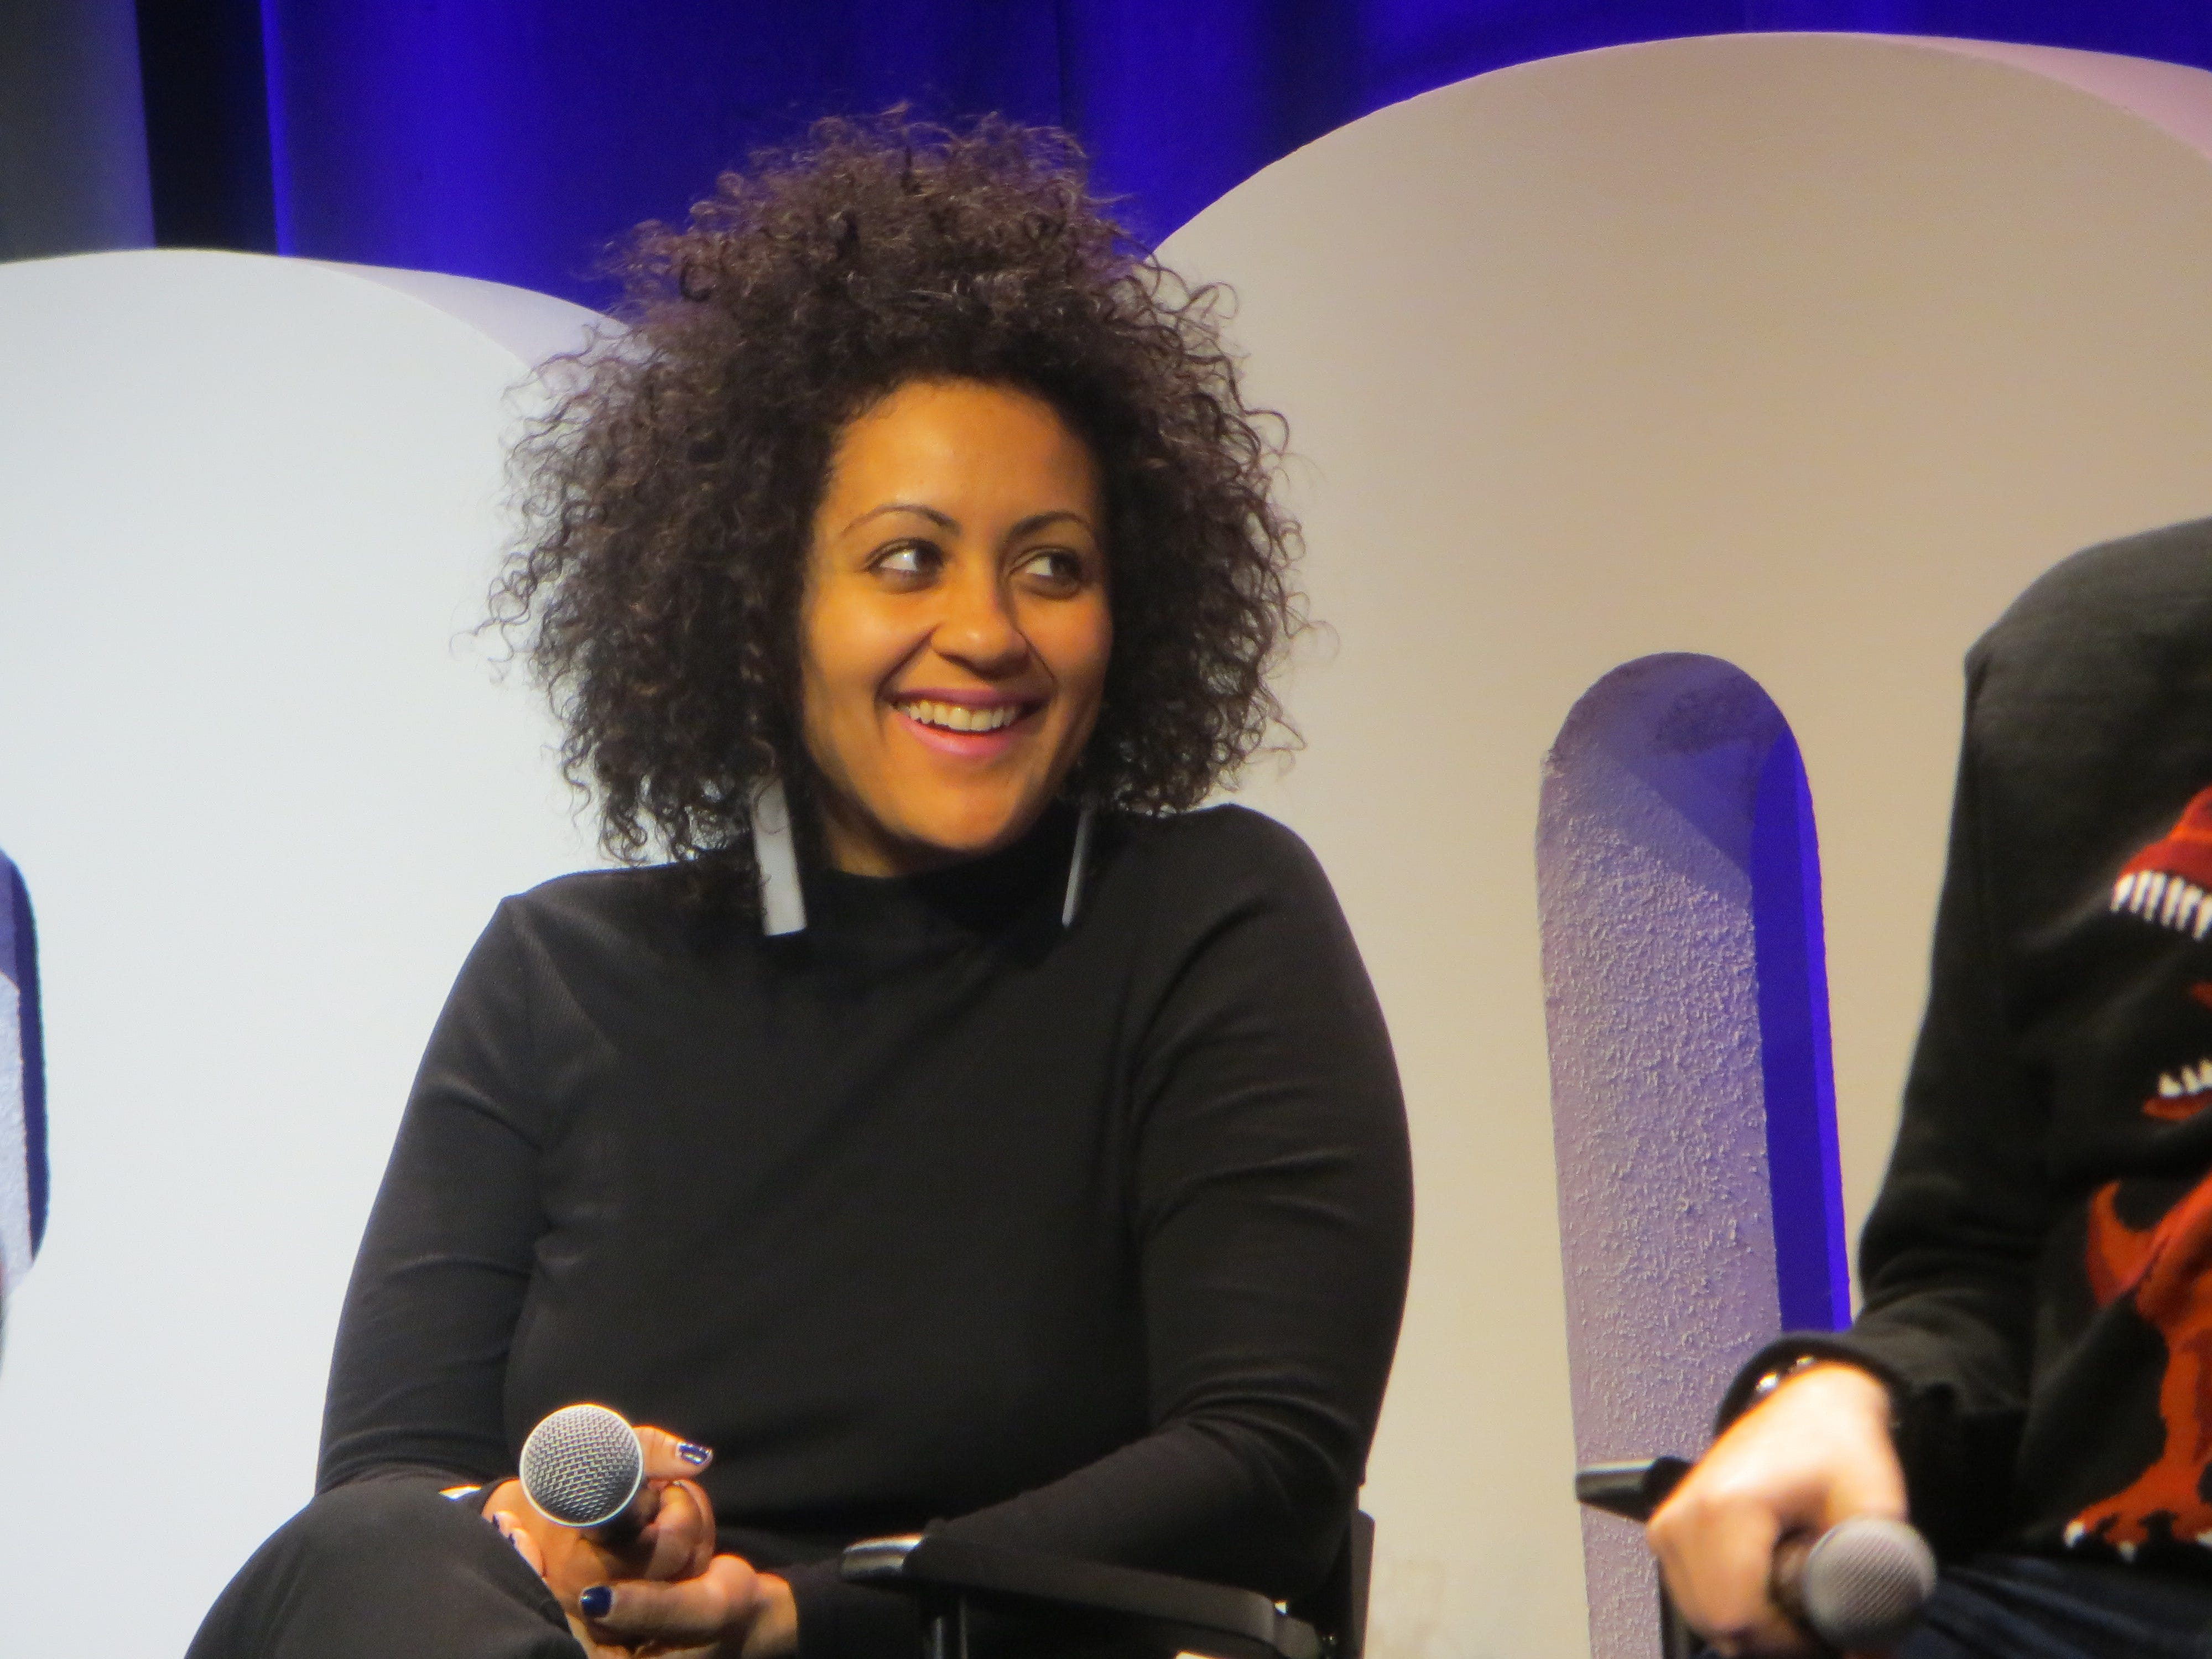 Lileana Blain-Cruz speaks during the New York Theatre Workshop at 40 panel at BroadwayCon 2019, held Jan. 11 to 13, 2019, at the New York Hilton Midtown in Manhattan.